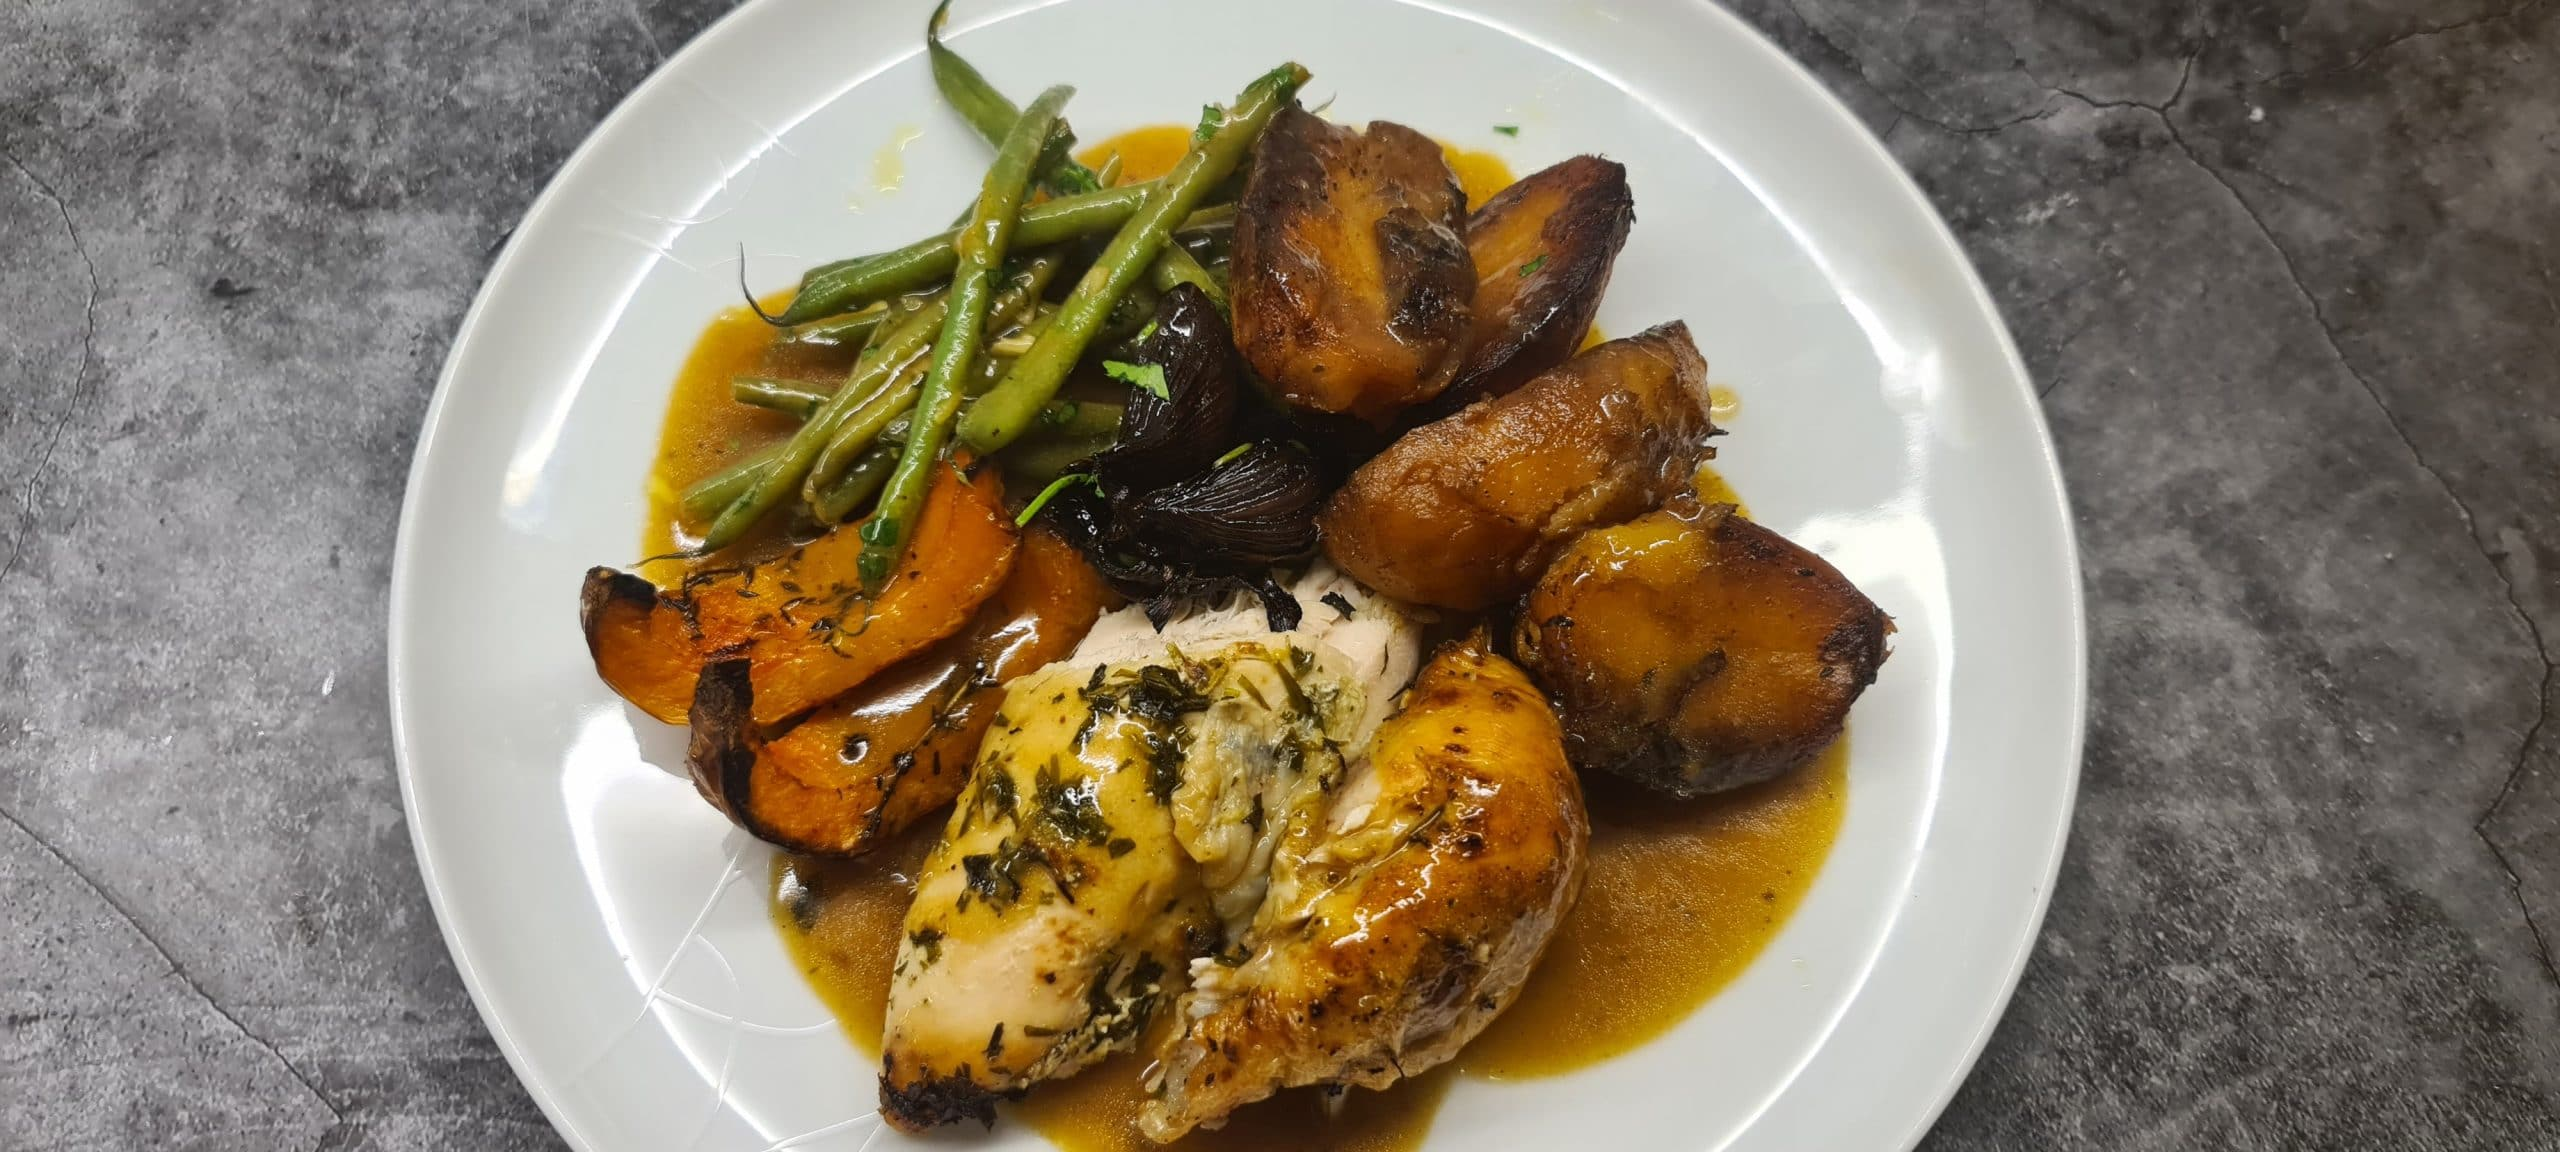 You are currently viewing Tarragon and Lemon Roast Chicken